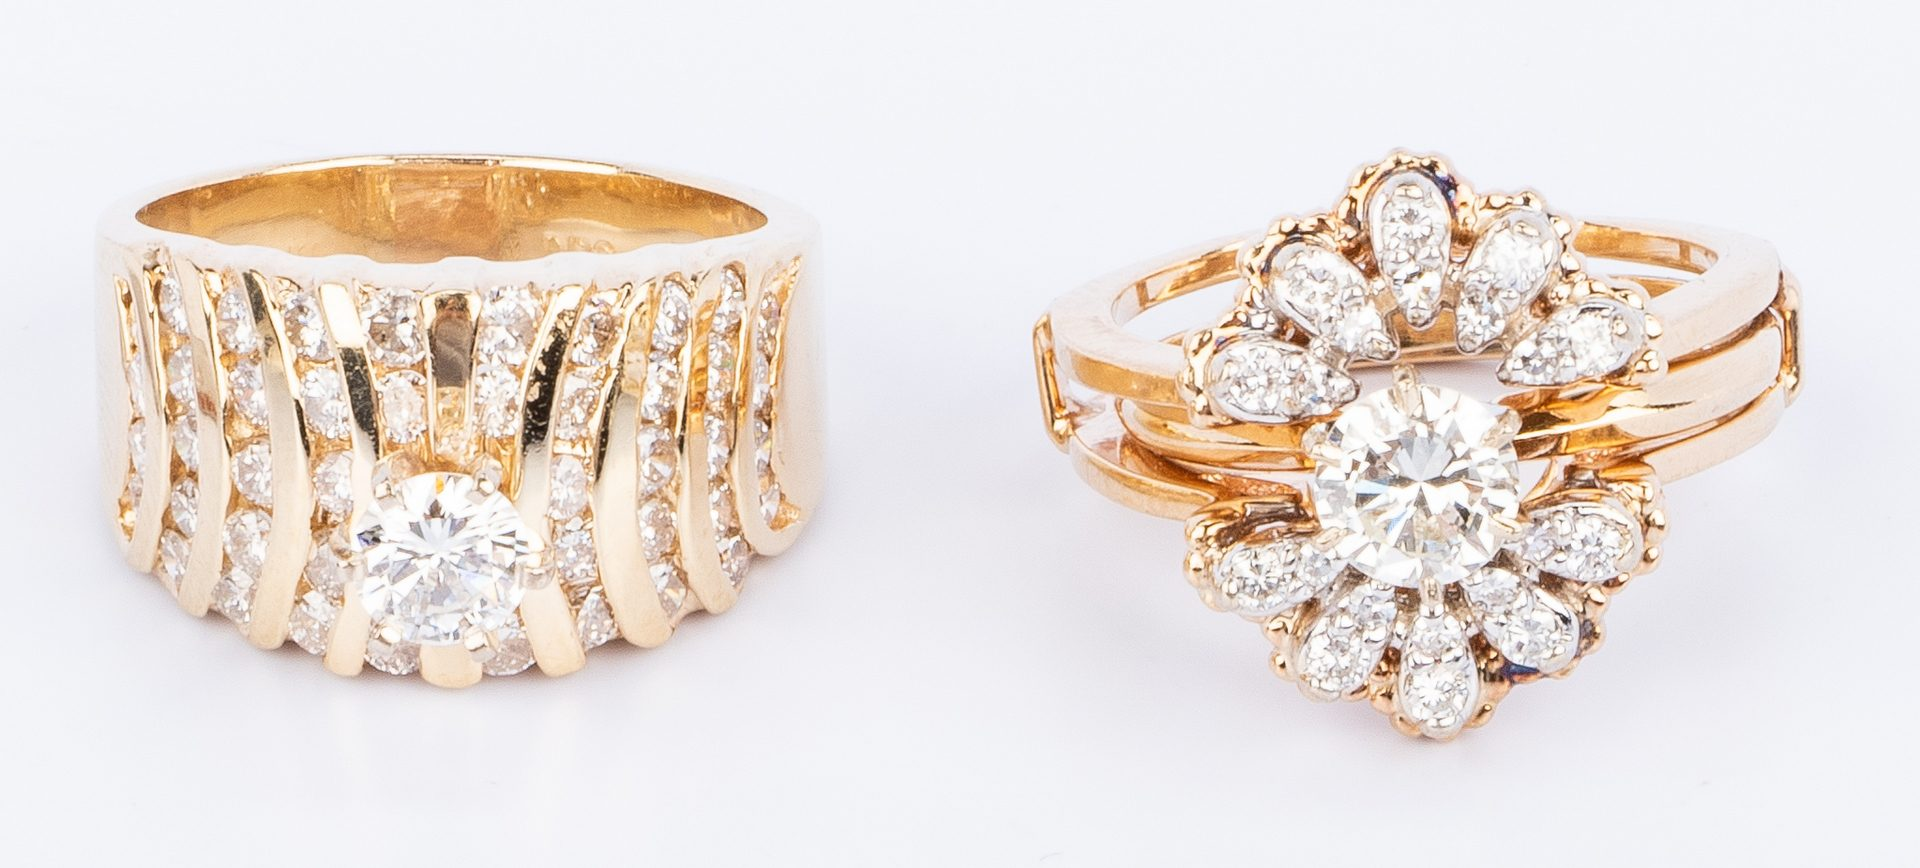 Lot 31: Two 14K Diamond Wedding Rings